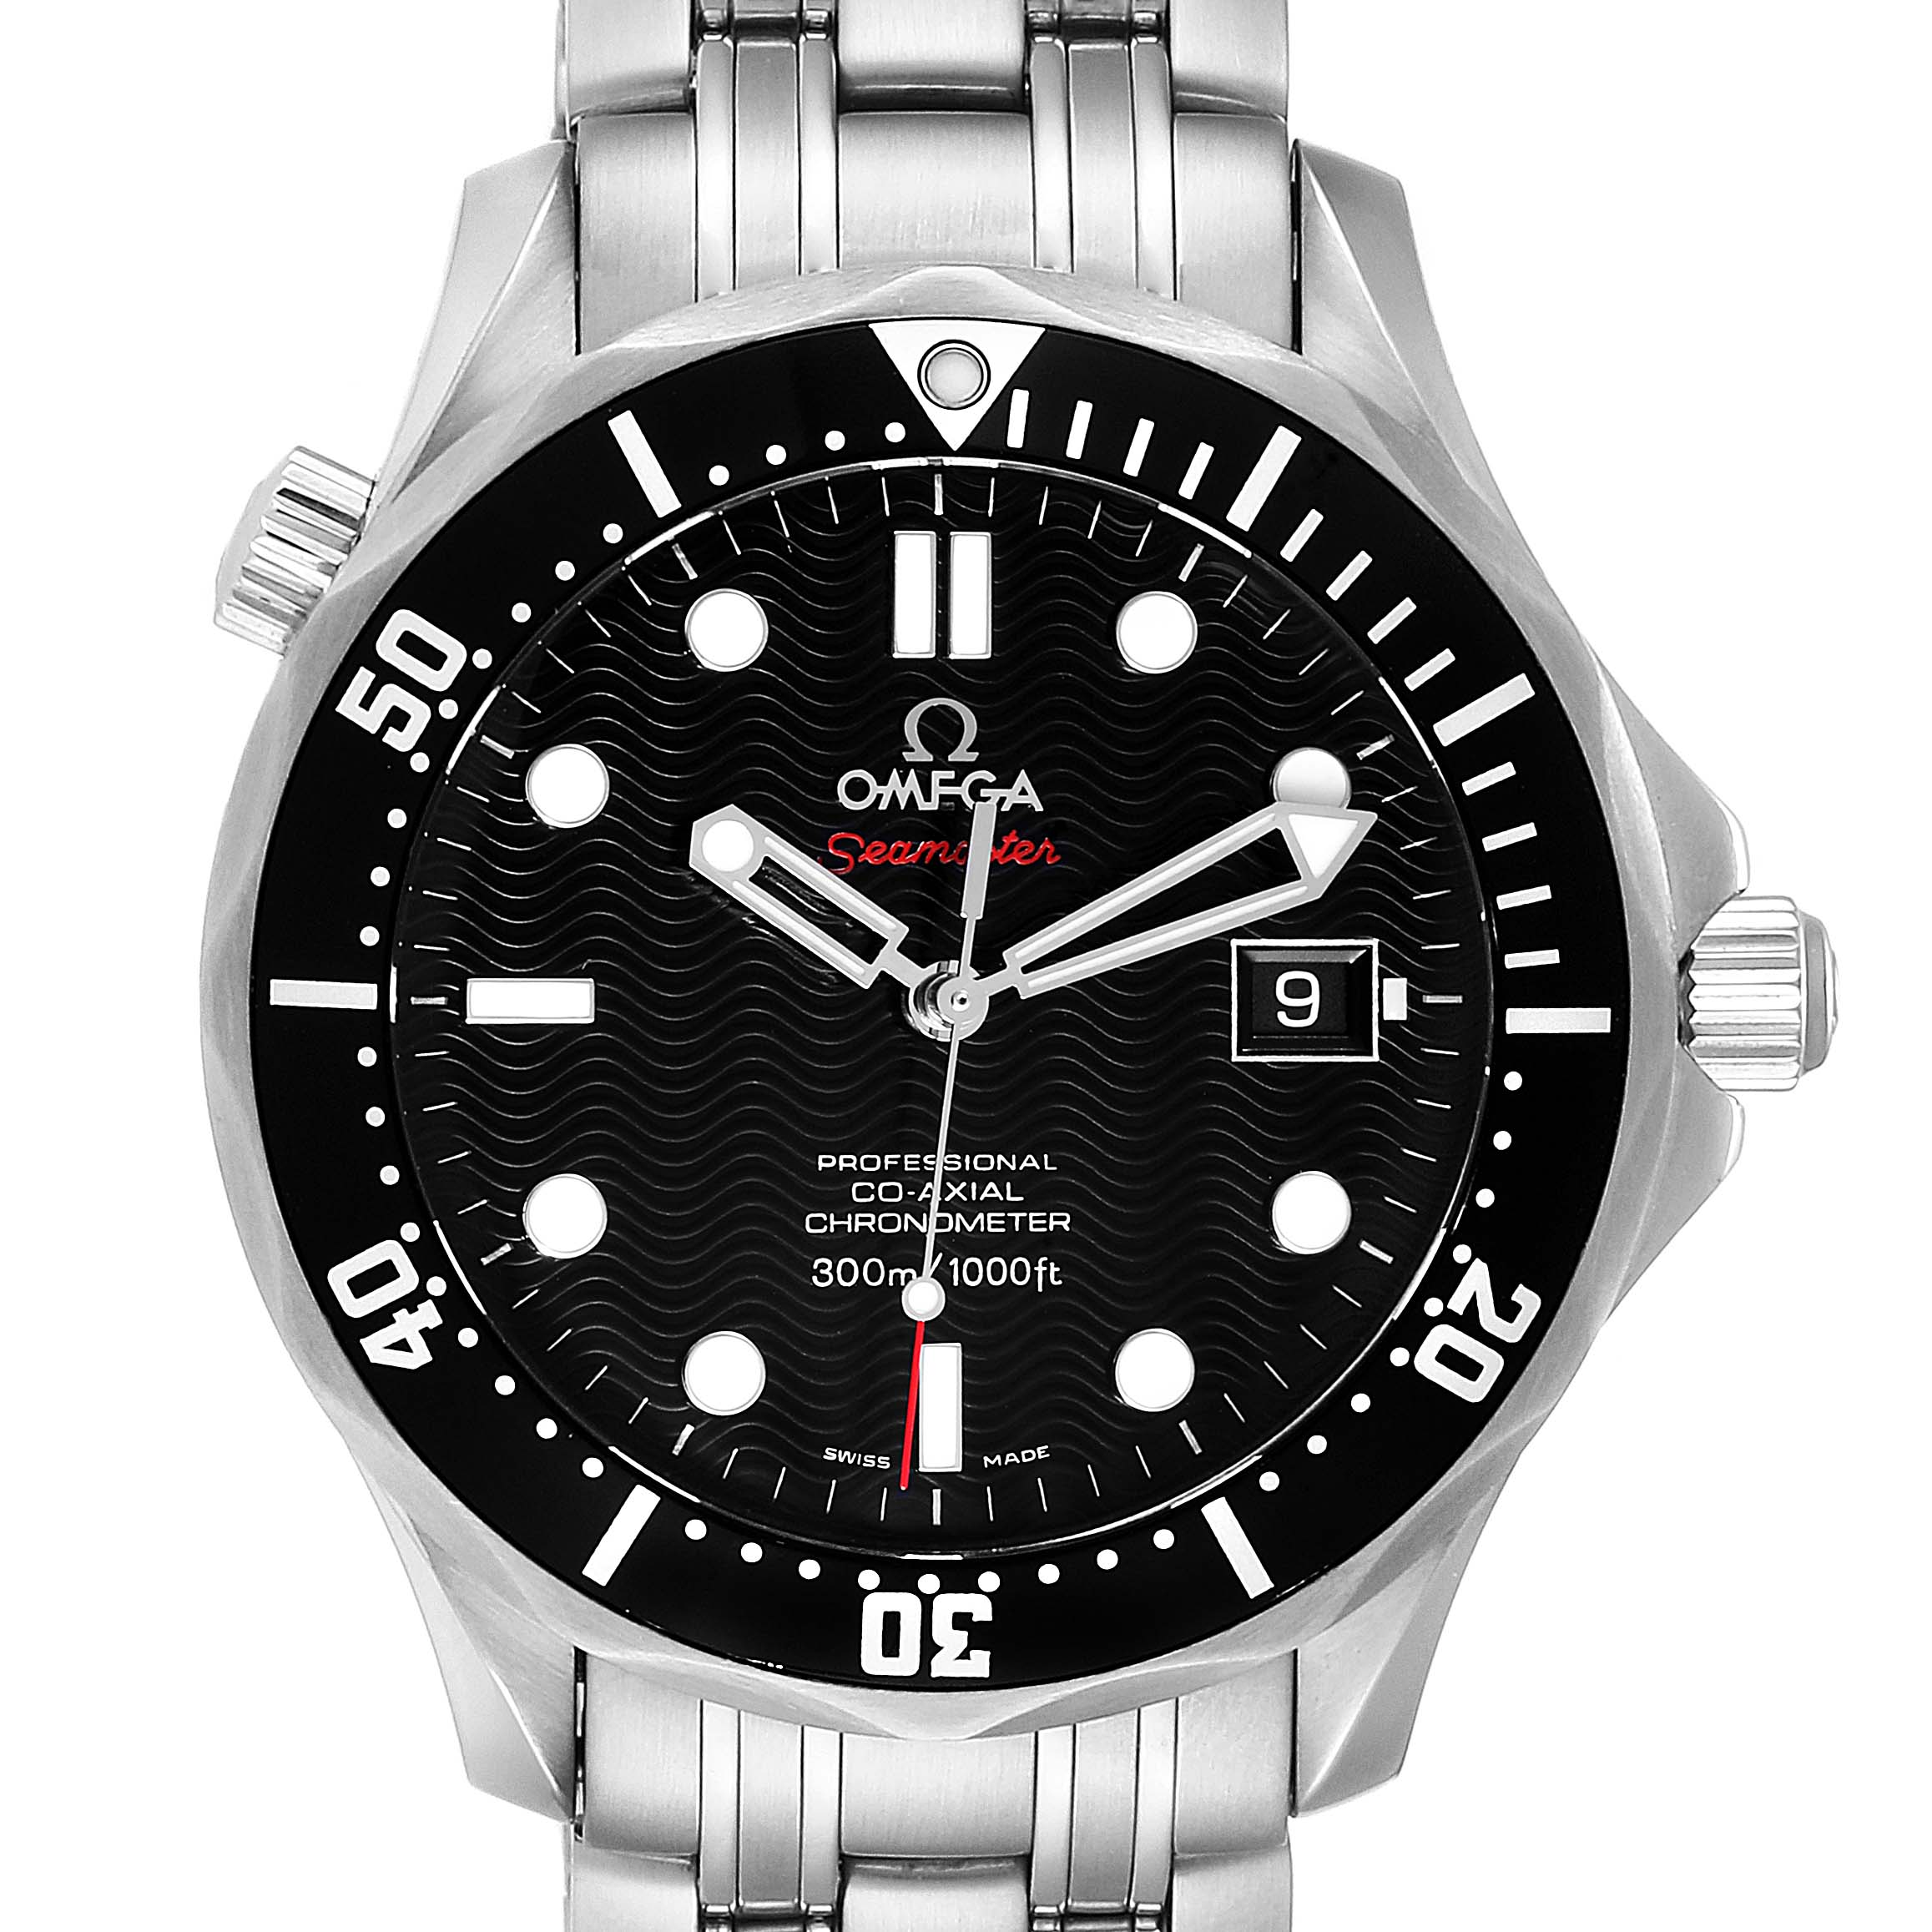 Omega Seamaster Bond 007 Limited Edition Watch 212.30.41.20.01.001 Card